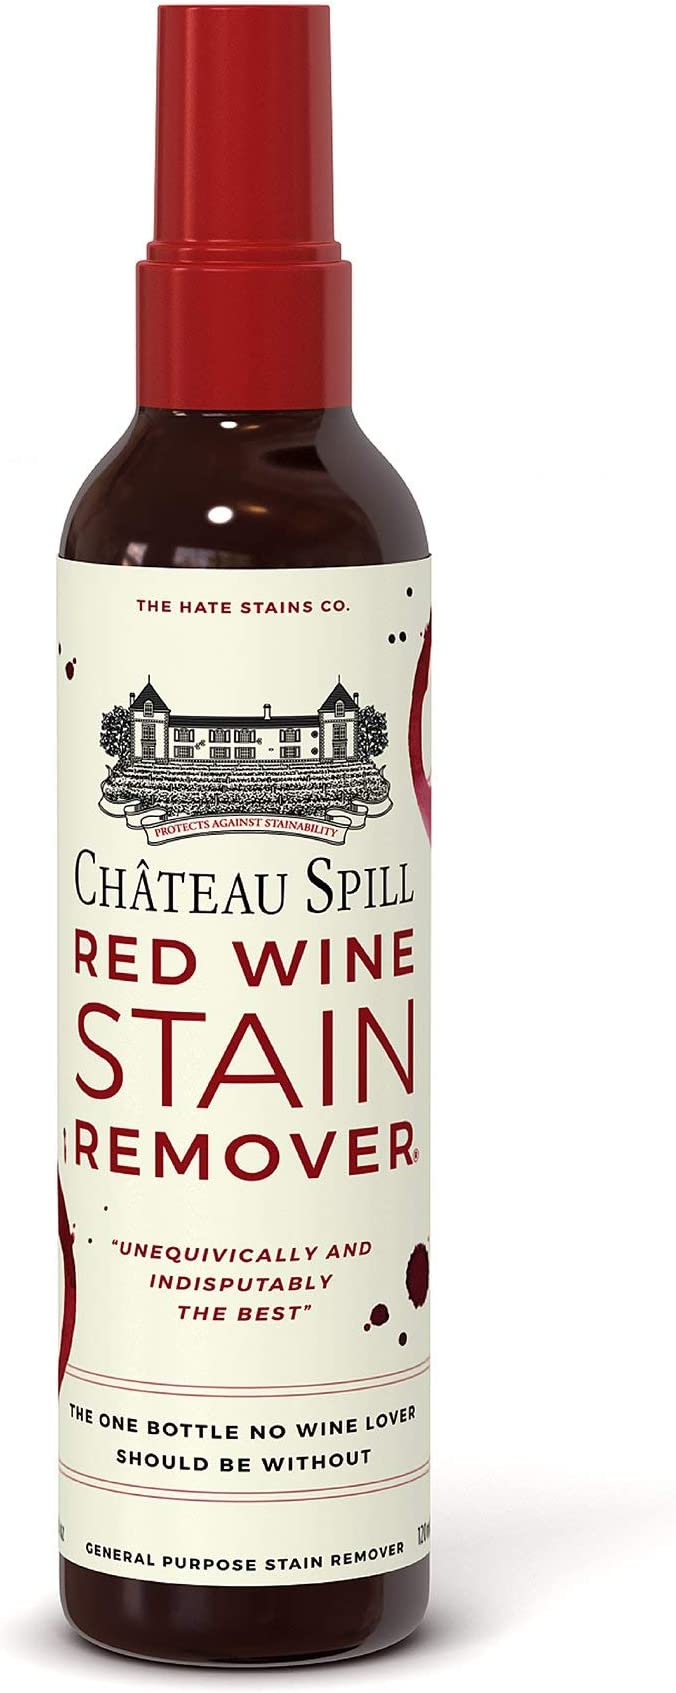 Chateau Spill Red Wine Stain Remover Super Concentrated And Safe Spray Cleaner For New And Set In Wine Stains On Carpet Rugs Clothing Upholstery And Laundry 120ml 4 Oz Spray Bottle